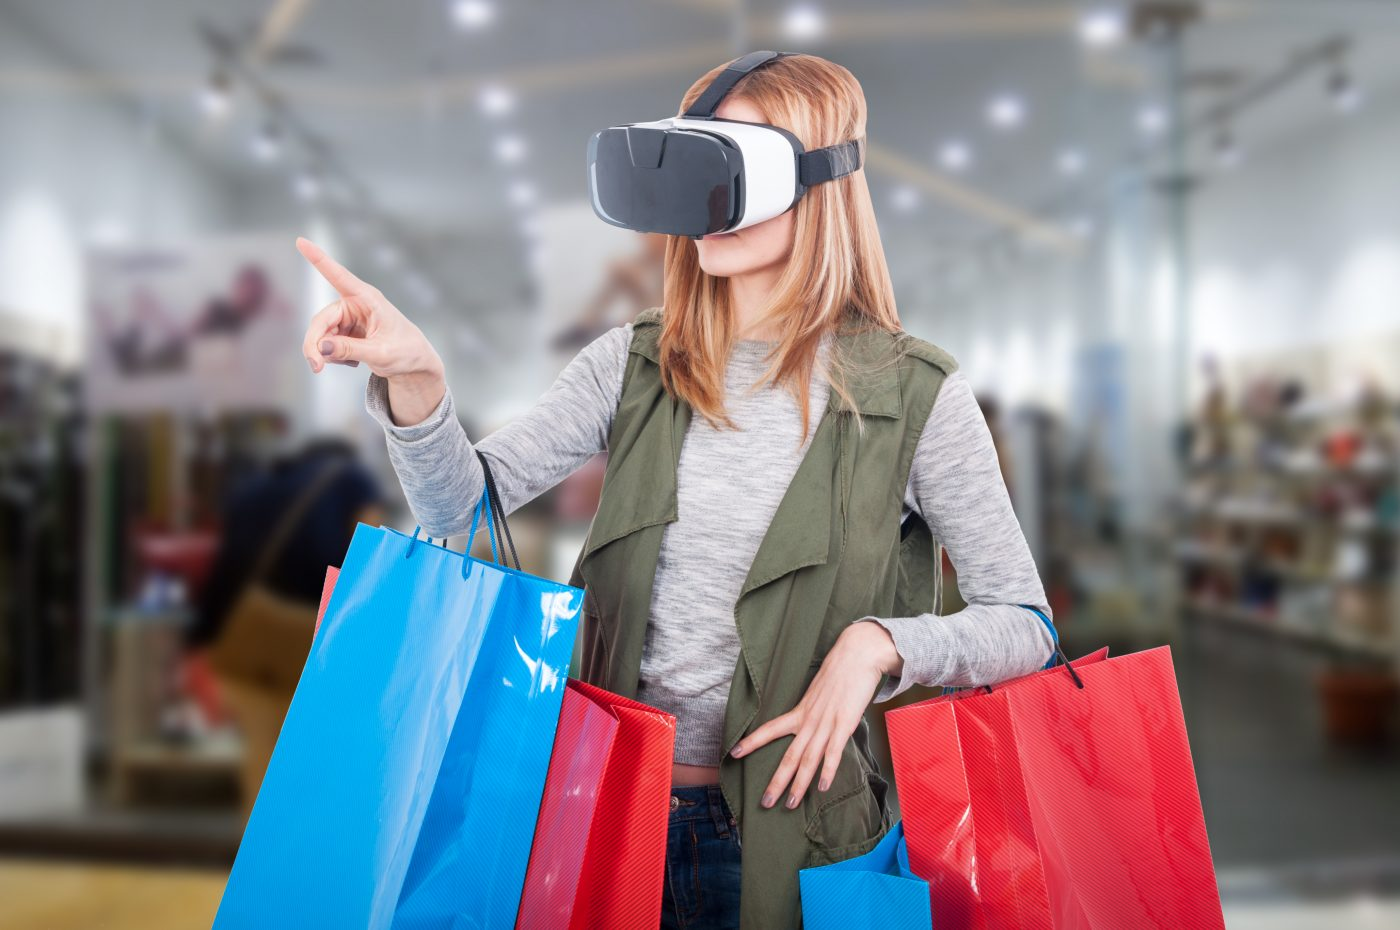 virtual reality is changing the way we shop